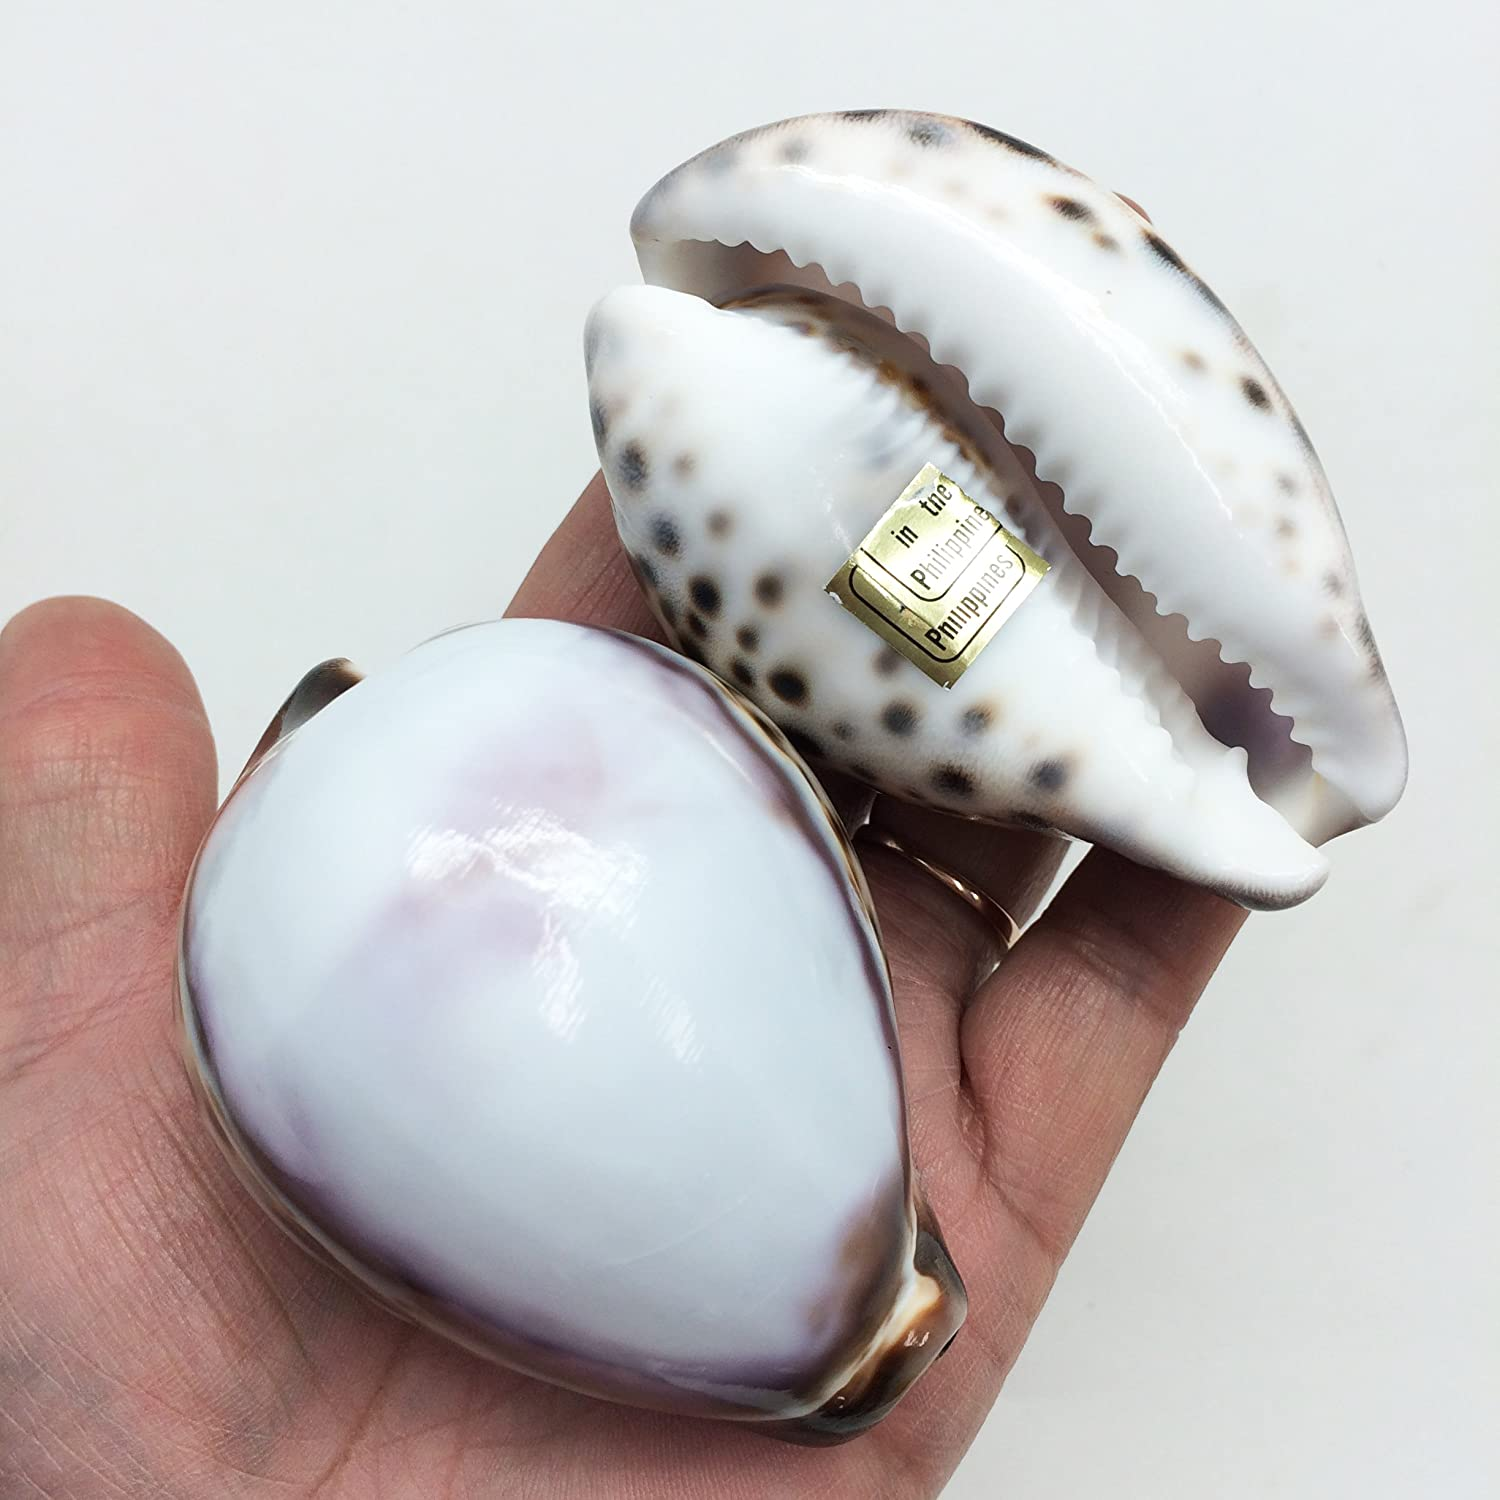 PEPPERLONELY 5PC Polished White Top Tiger Cowrie Sea Shells, Shell Size 3 Inch ~ 3-1/4 Inch